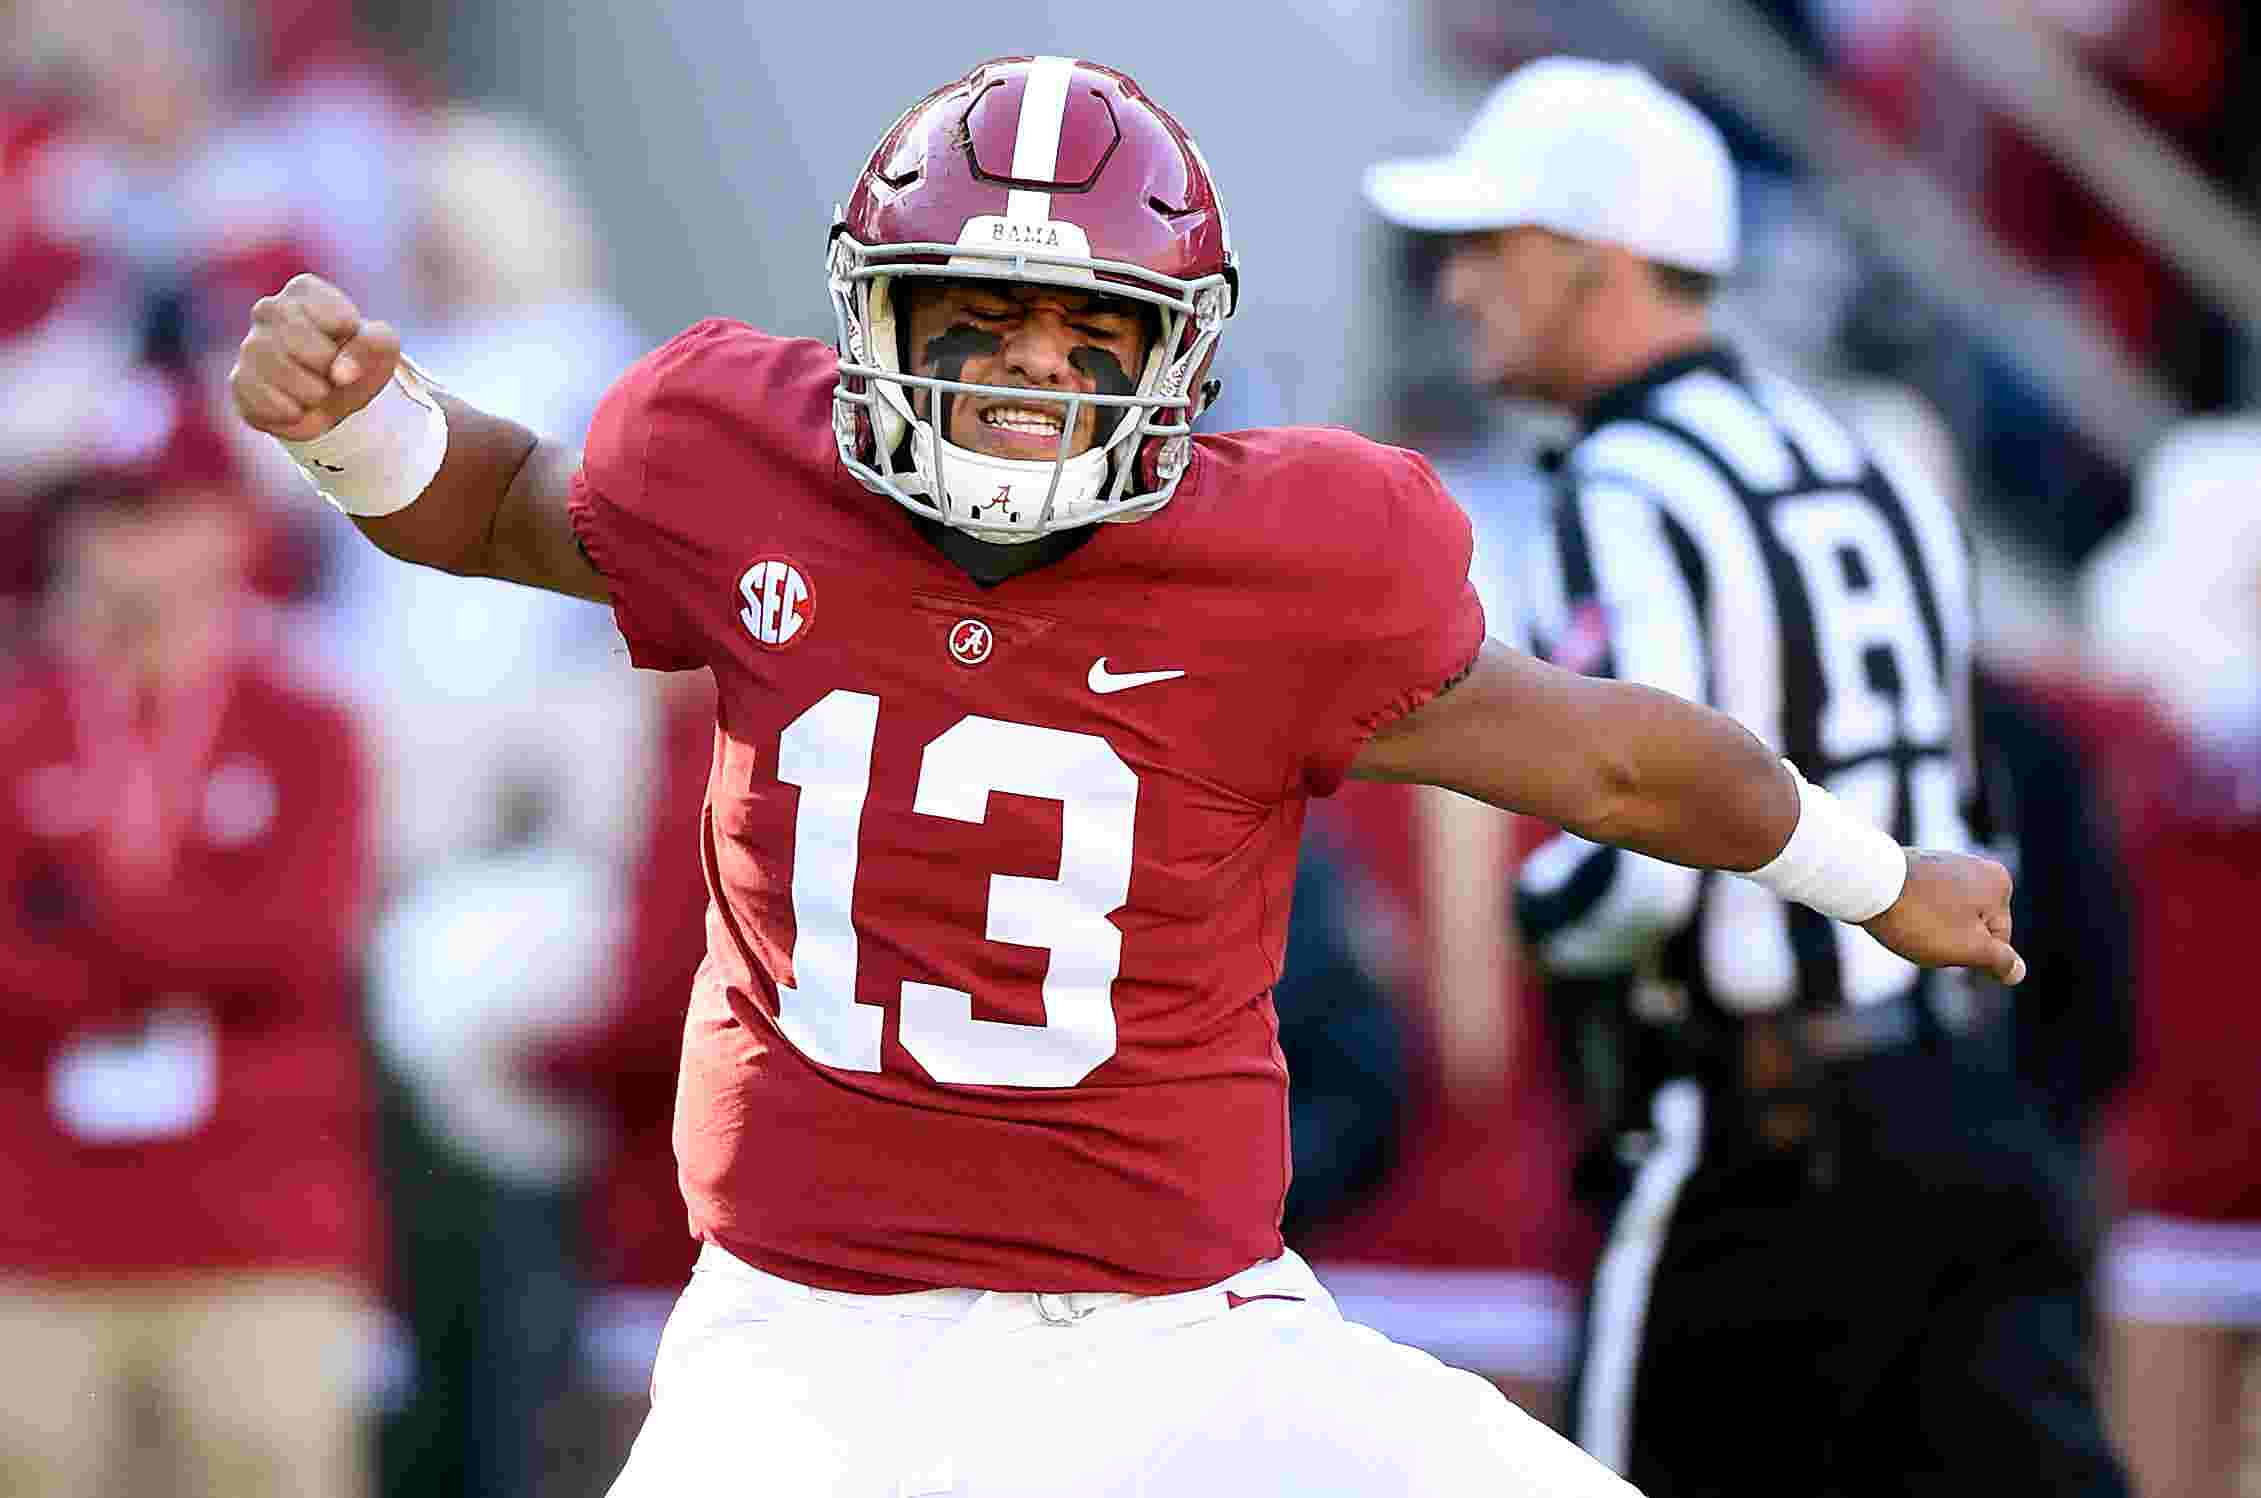 Alabama football has more starting talent than SEC East